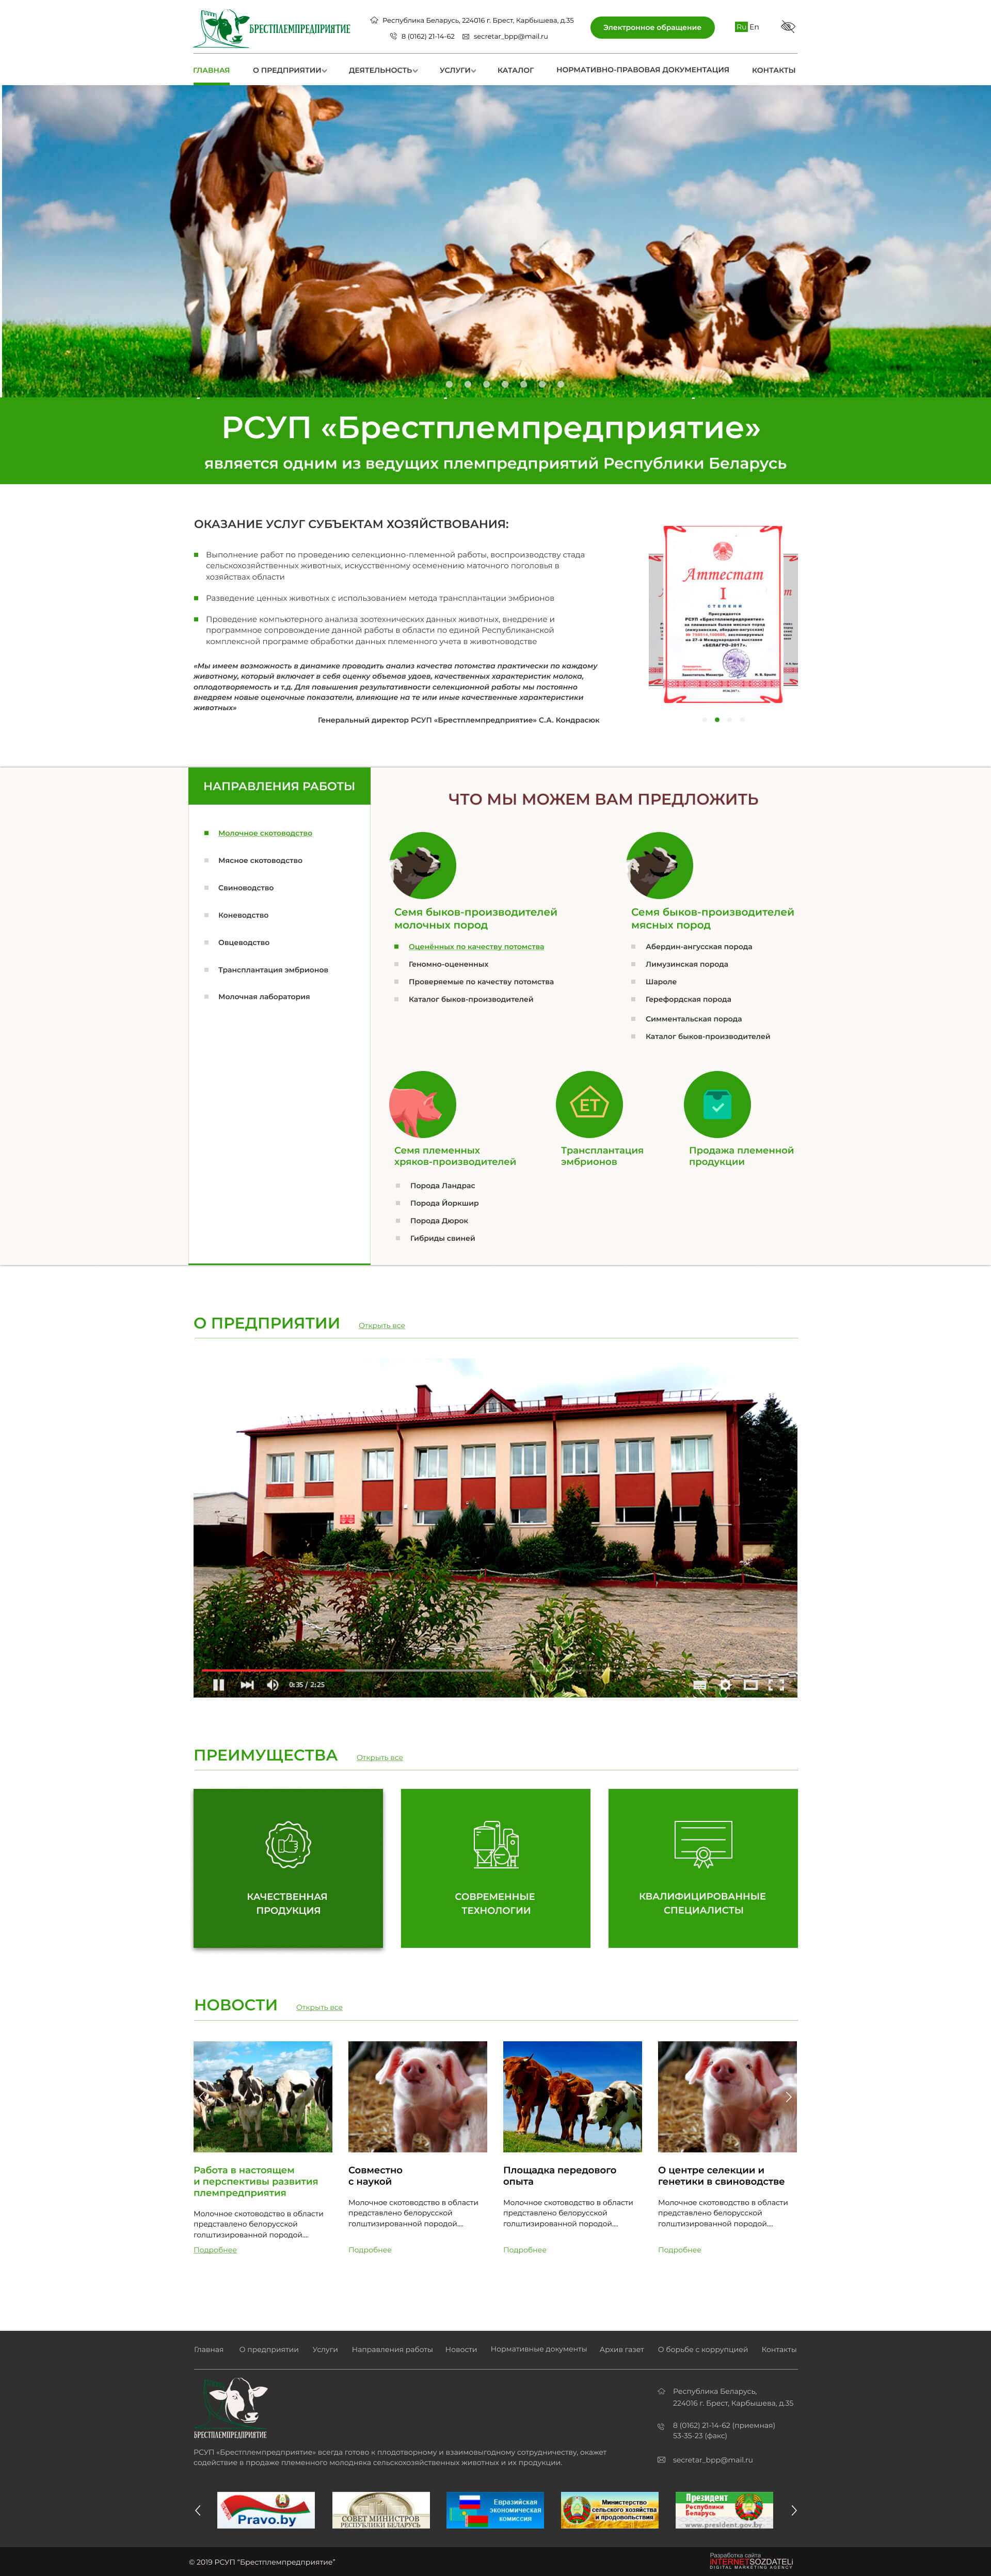 creation of a website design for an agricultural organization